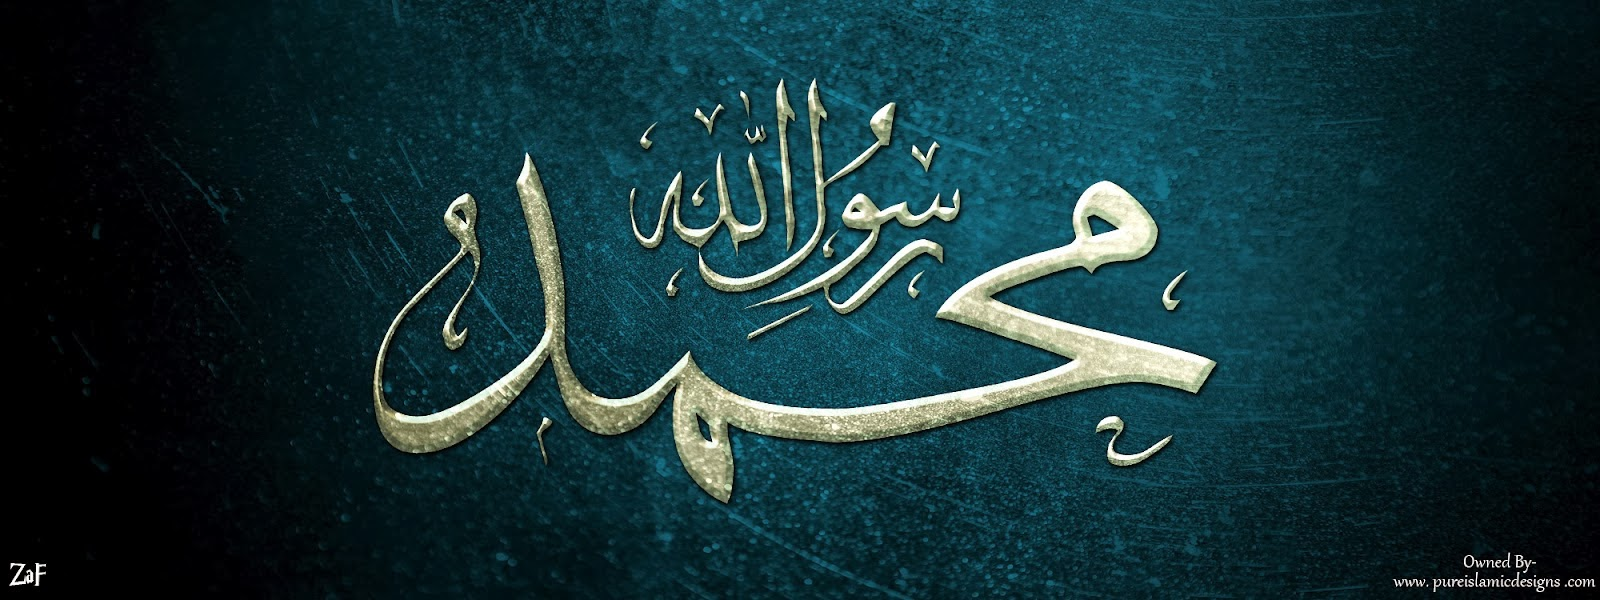 leadership principles of prophet muhammad Medina charter of prophet muhammad and pluralism by:  but through the unyielding principles of islam  prophet muhammad's lessons in leadership.